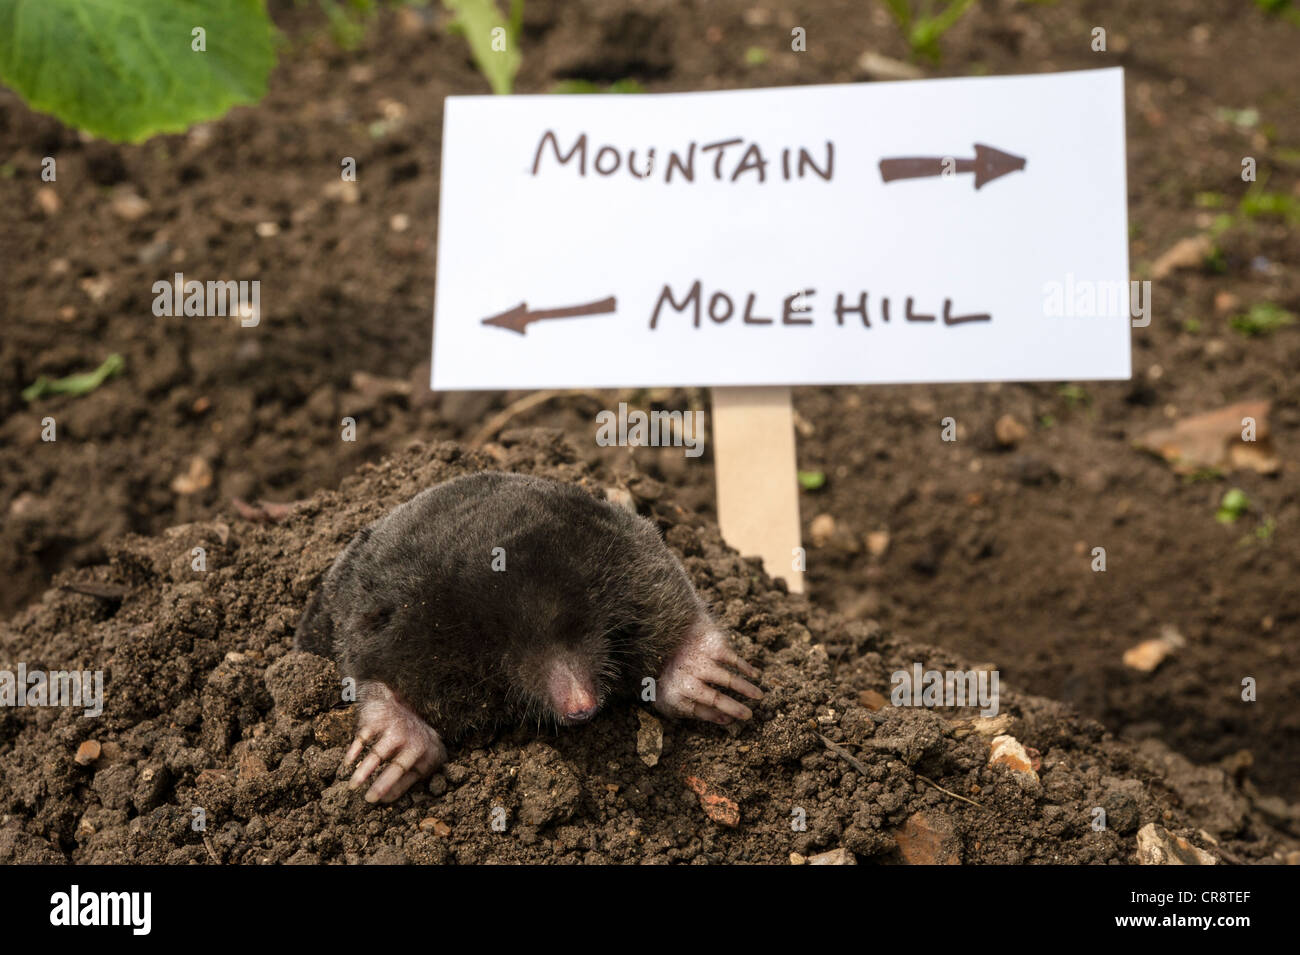 a-mole-making-a-mountain-out-of-a-molehill-CR8TEF.jpg